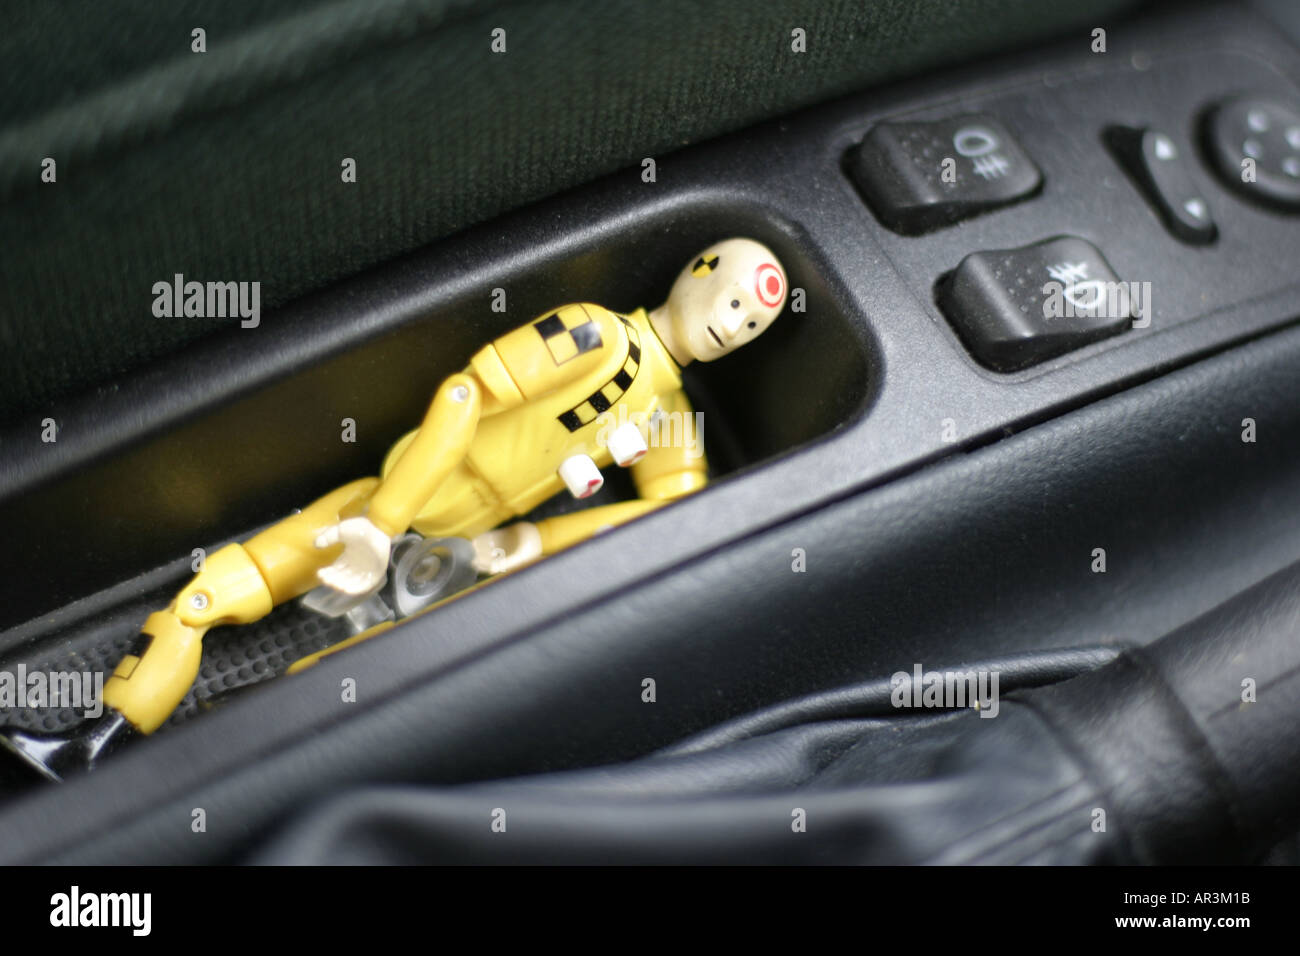 Crashtest Dummy Stock Photos Crashtest Dummy Stock Images Alamy